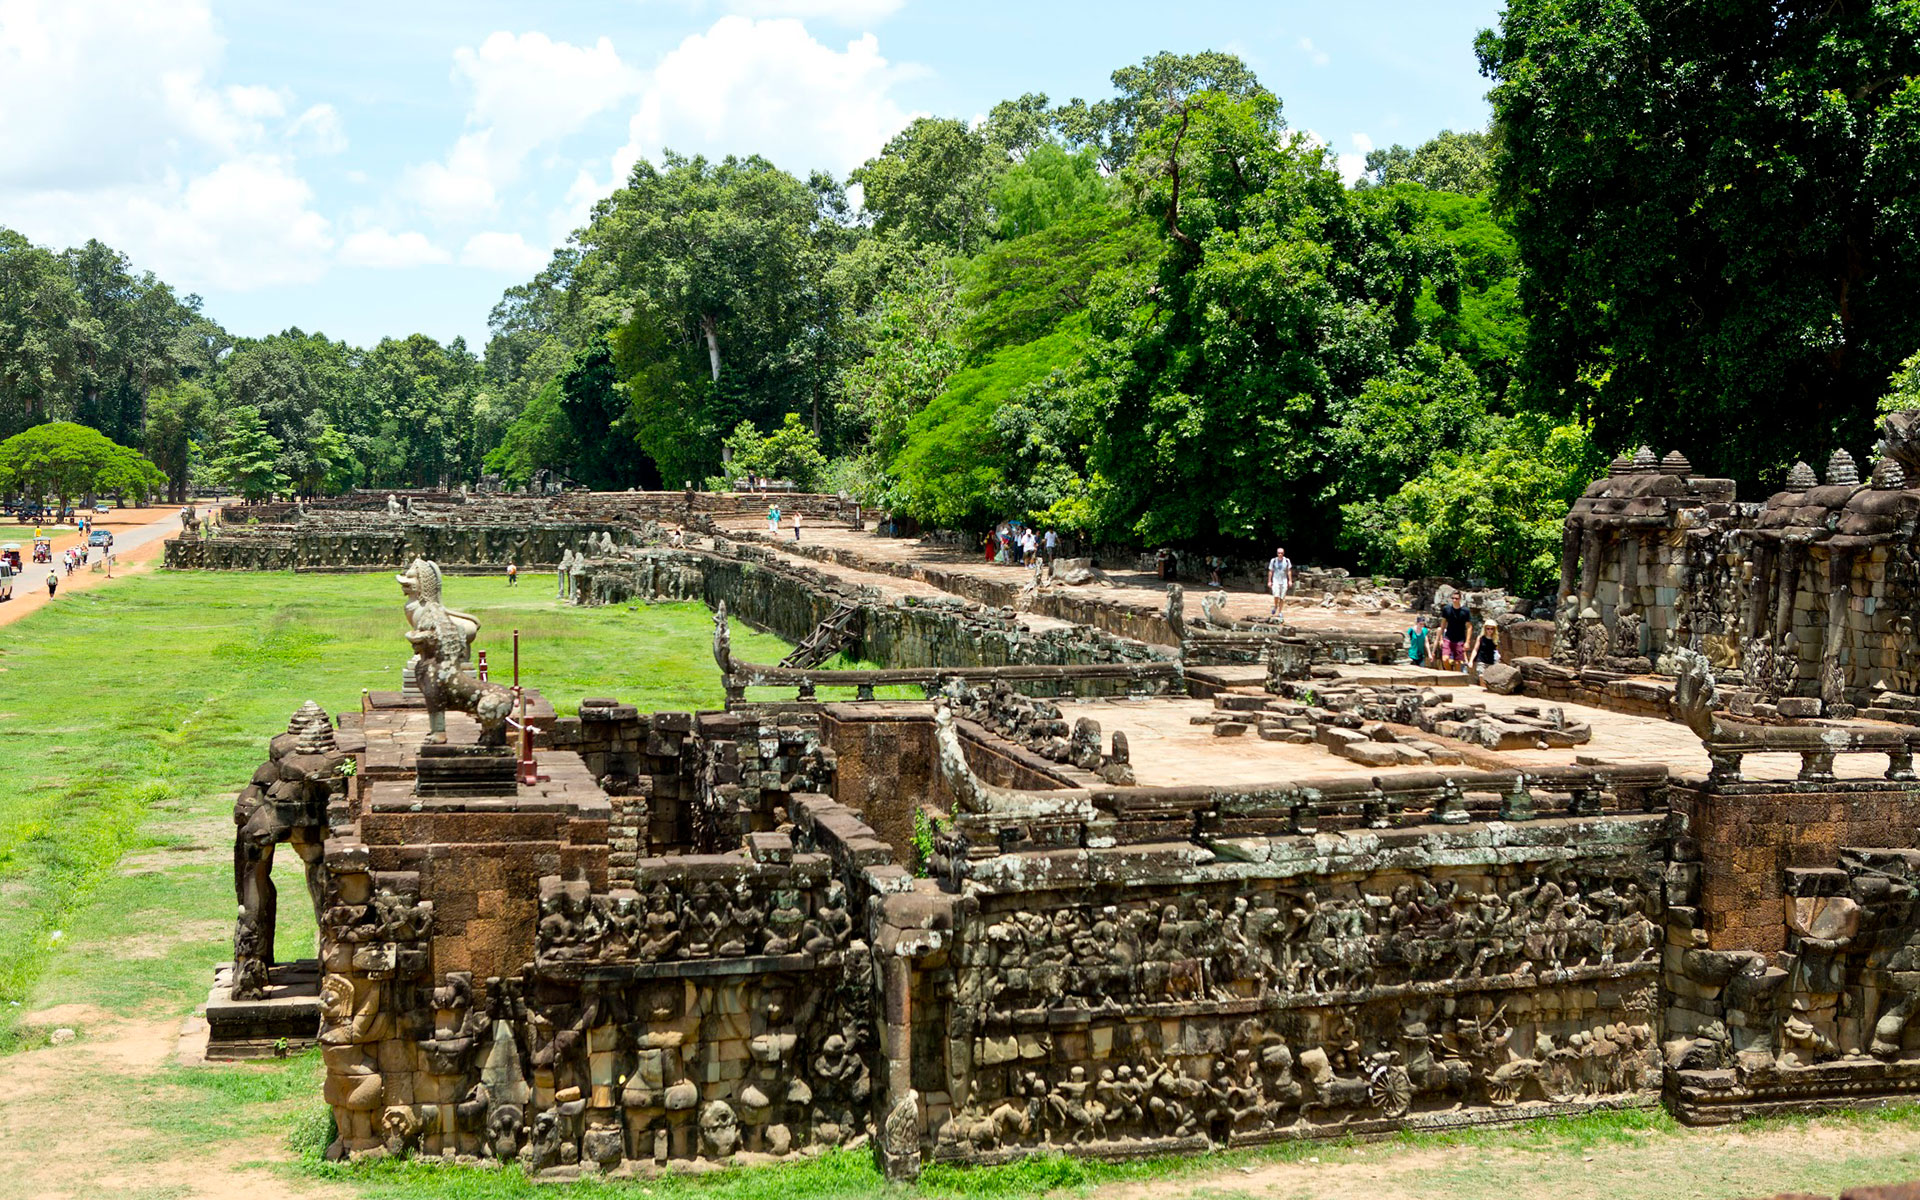 Terrace of the Elephants angkor thom sieam reap cambodia